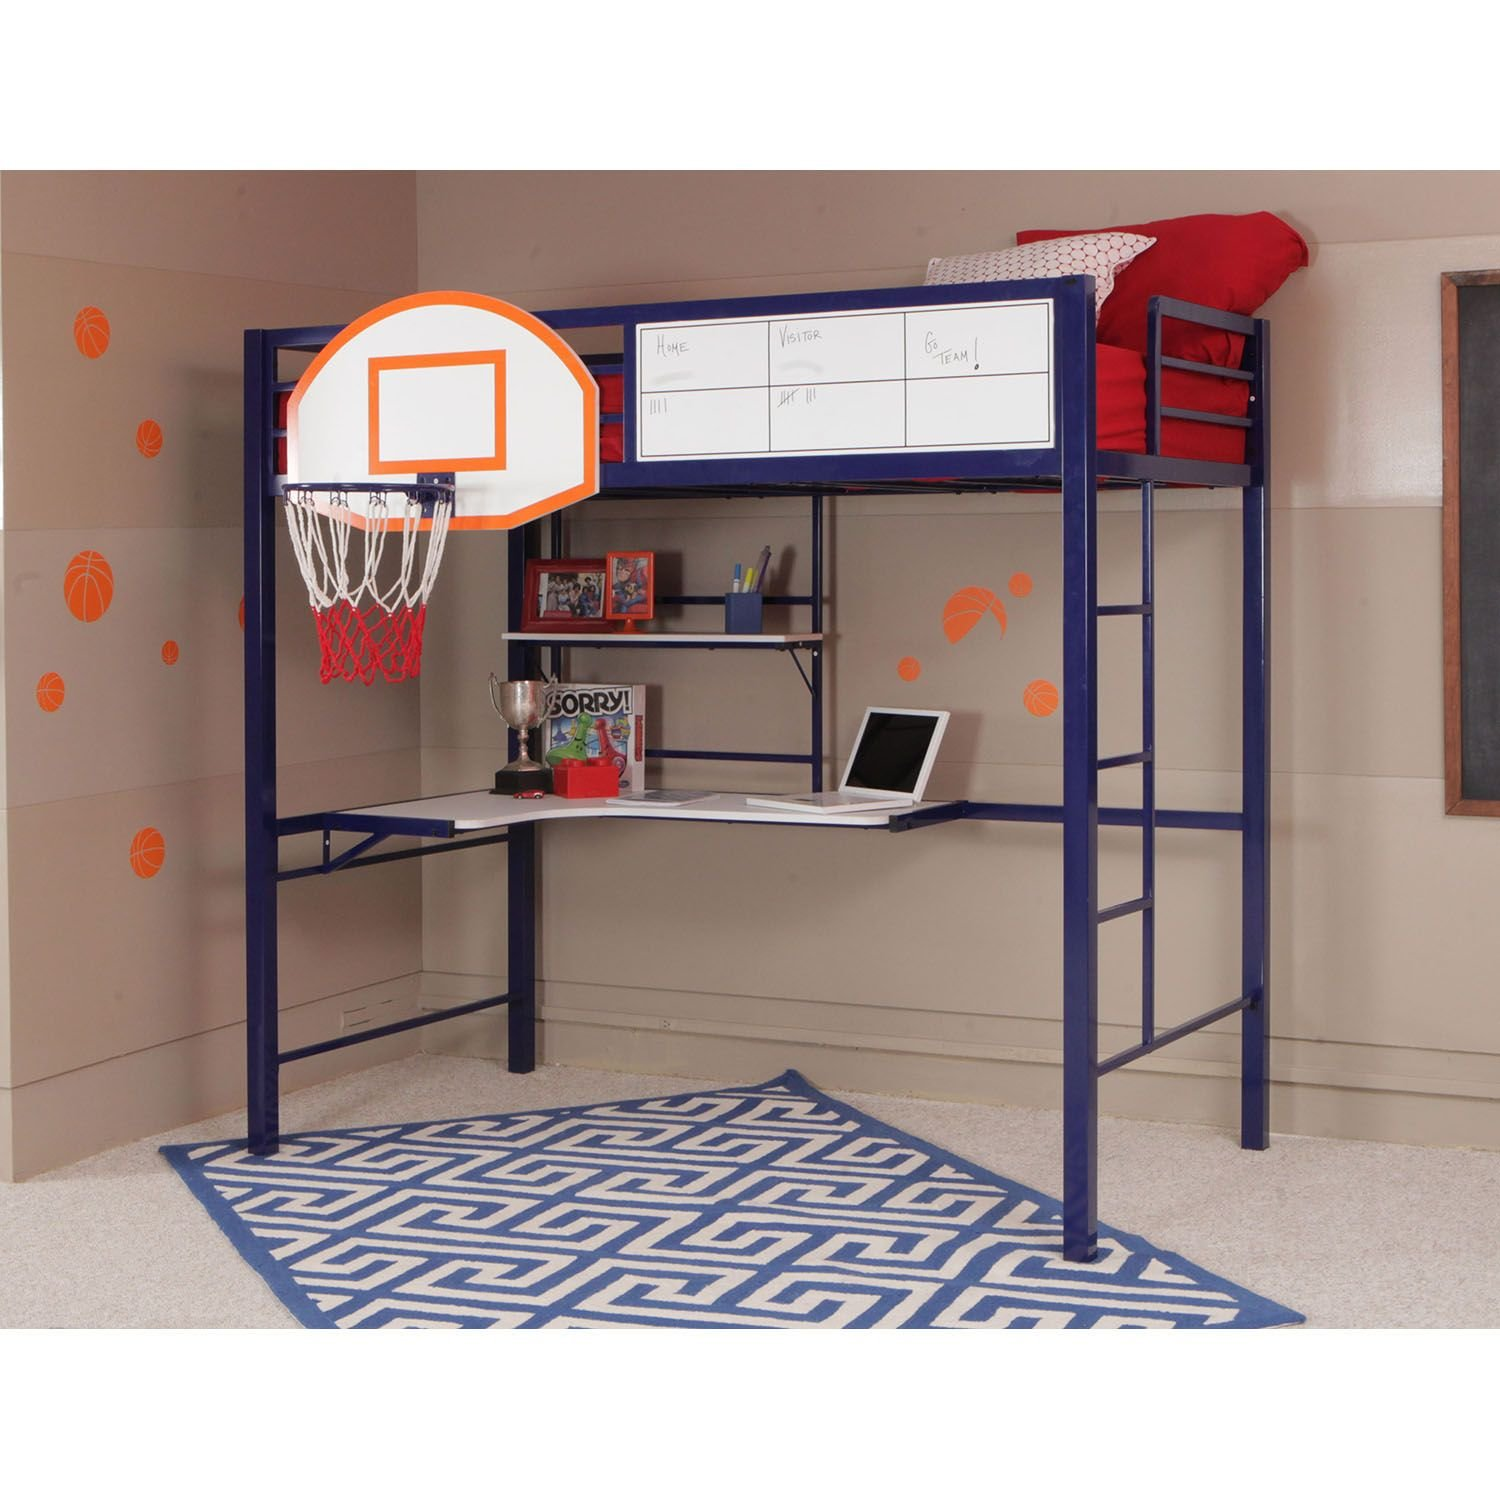 beds twin hdwstollgy walker low kids headboards grey company bed wood furniture bunk edison p loft solid